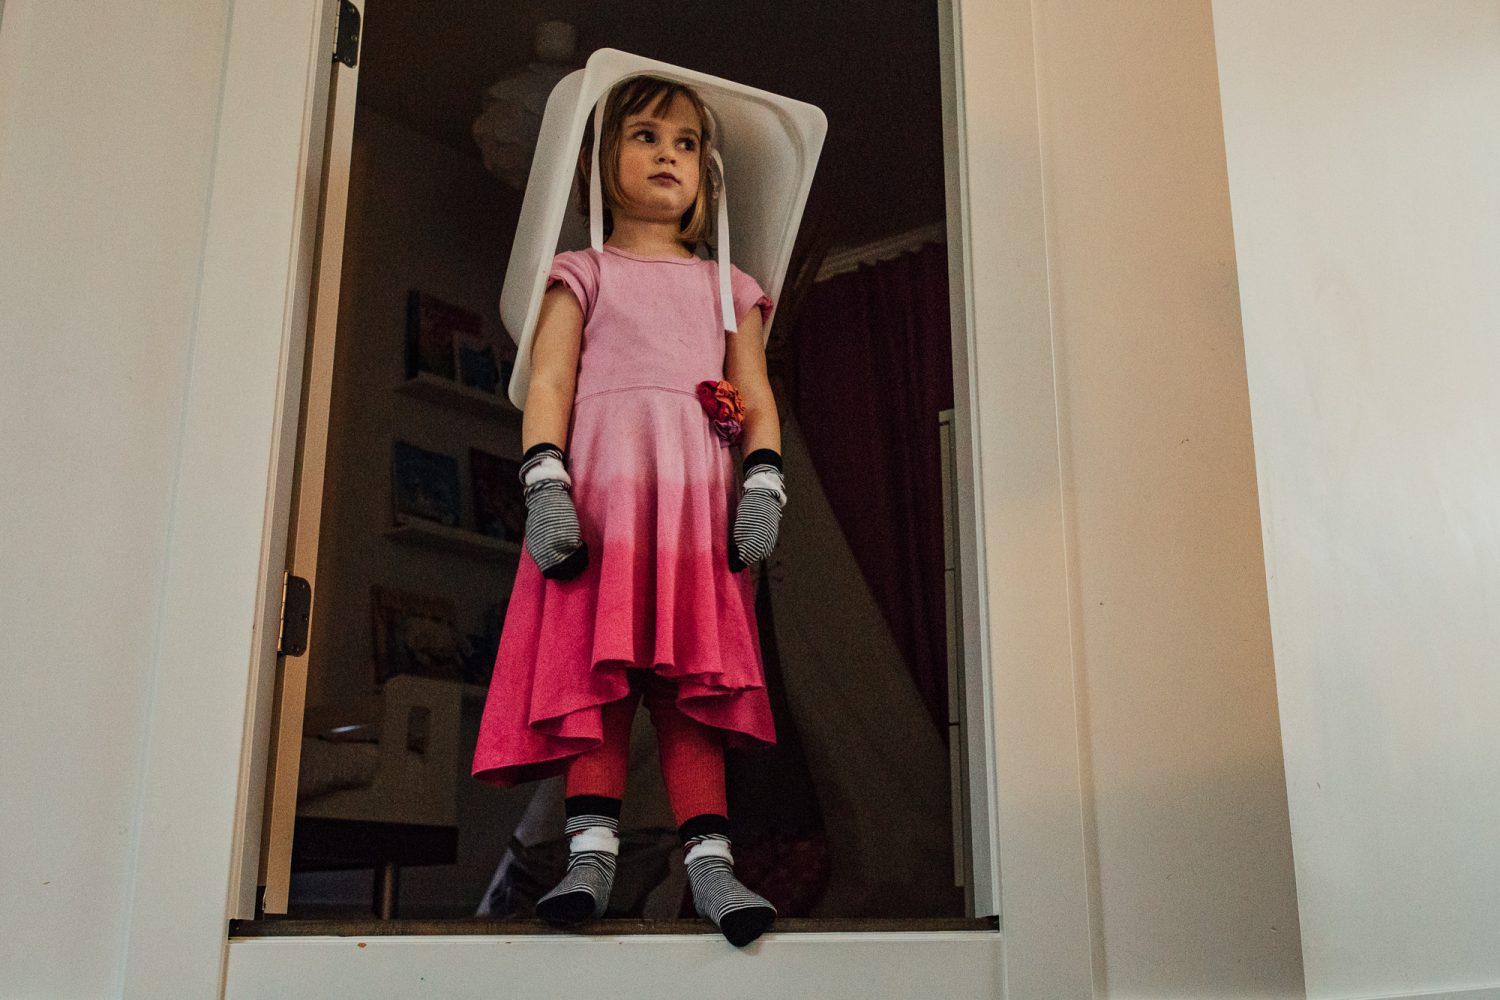 girl in pink dress with bucket on head and socks on hands